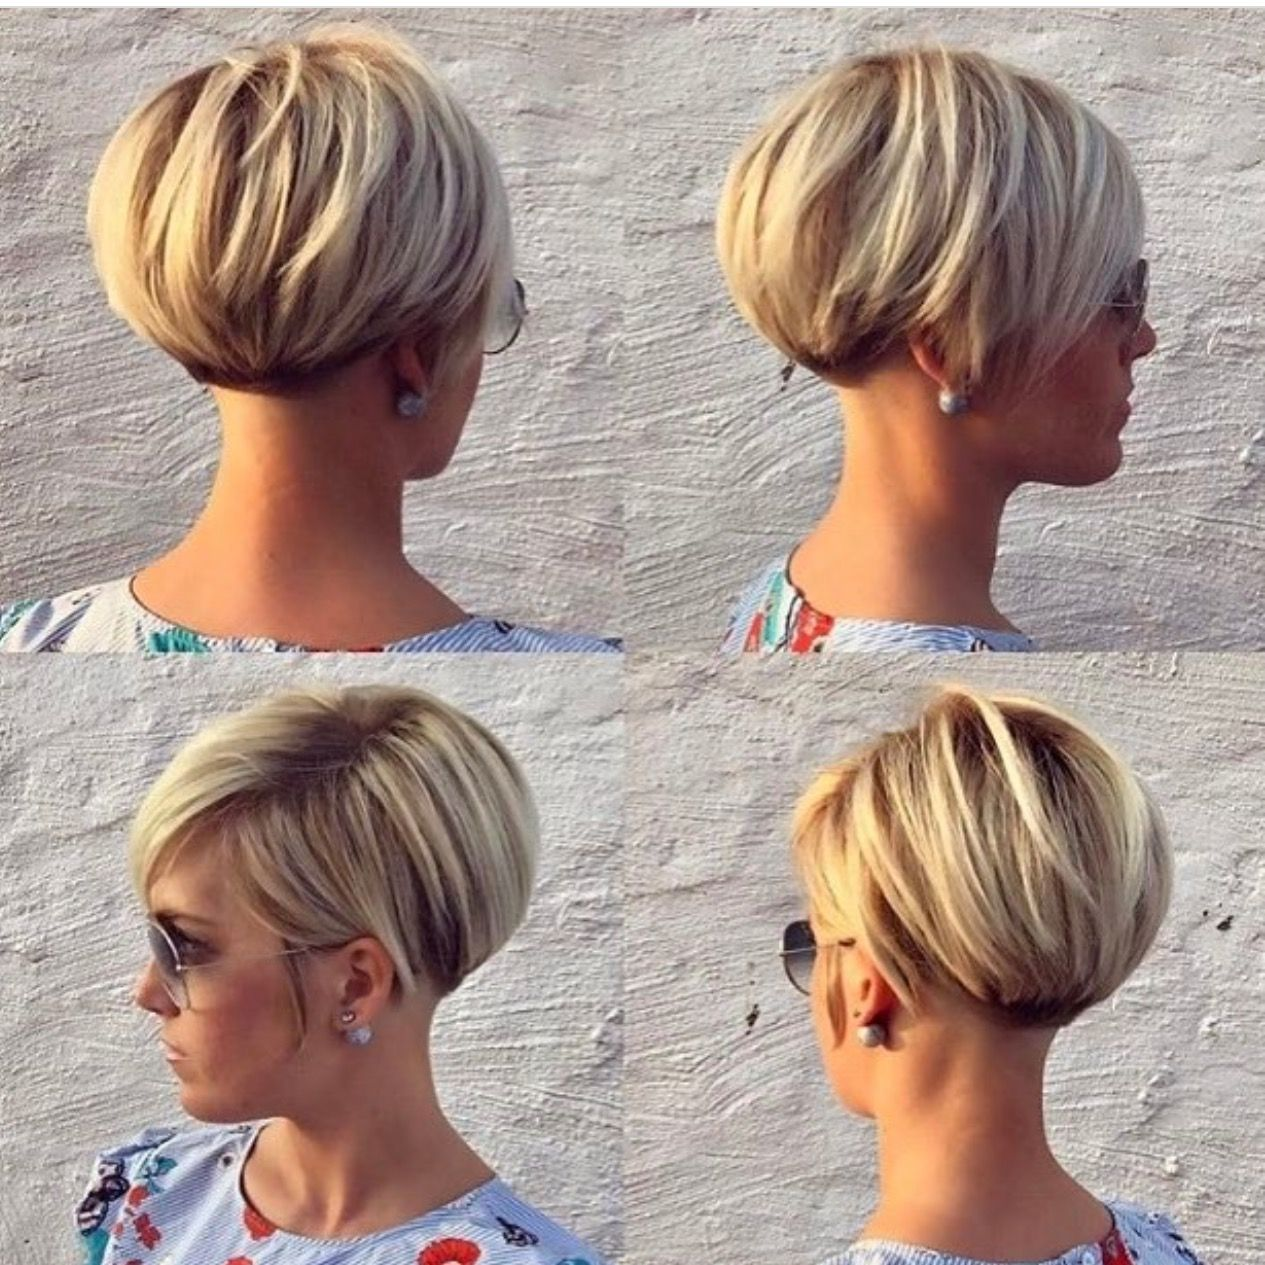 Pin By Svetlana Marchuk On Haircuts In 2018 Pinterest Short Hair